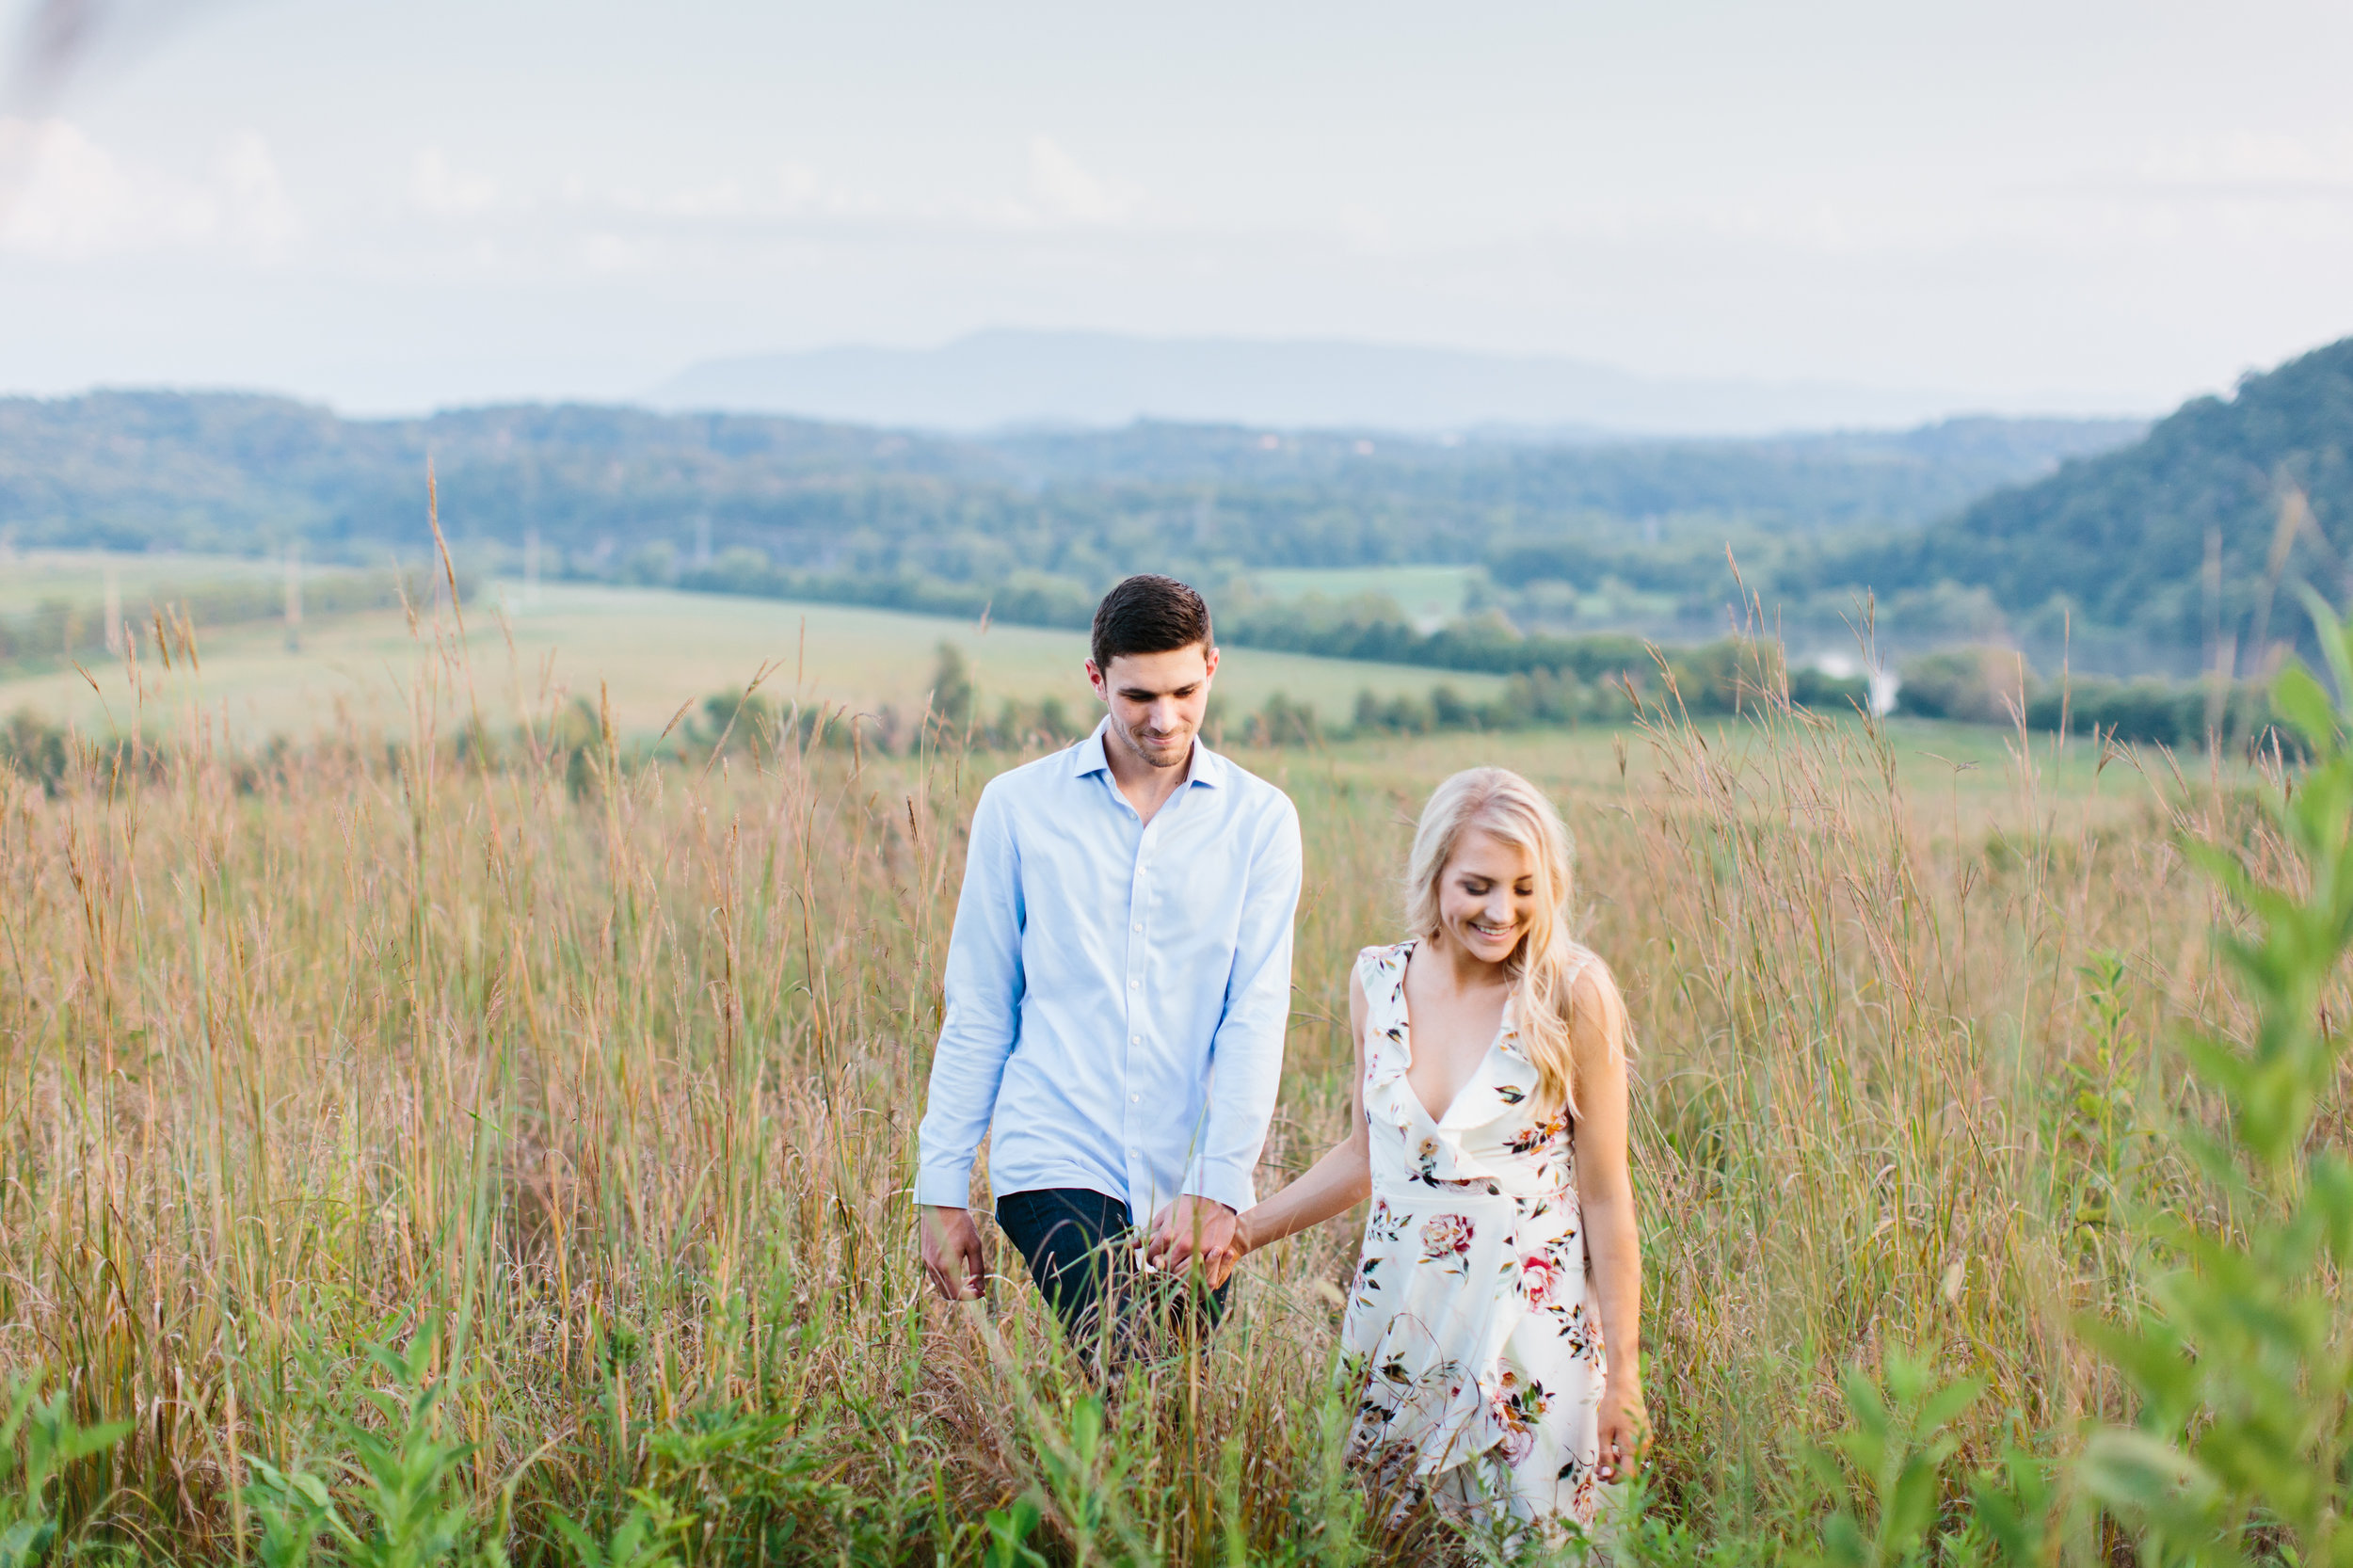 Marie_Perry_Engagement_Session_Abigail_malone_Photography-112.jpg